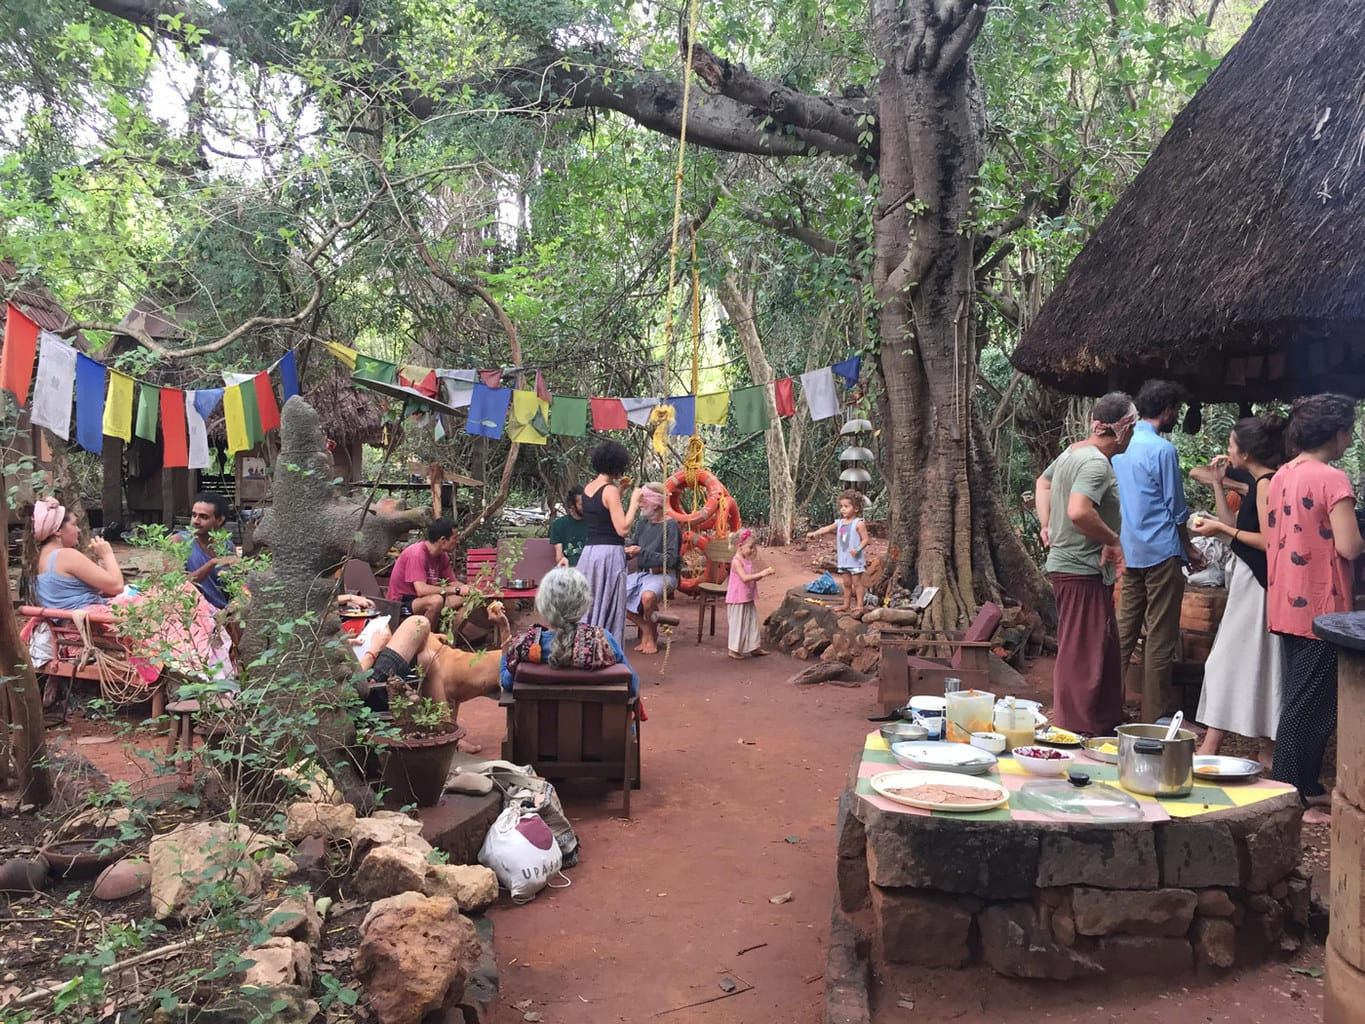 Sunday pot luck with some of the founders of Auroville